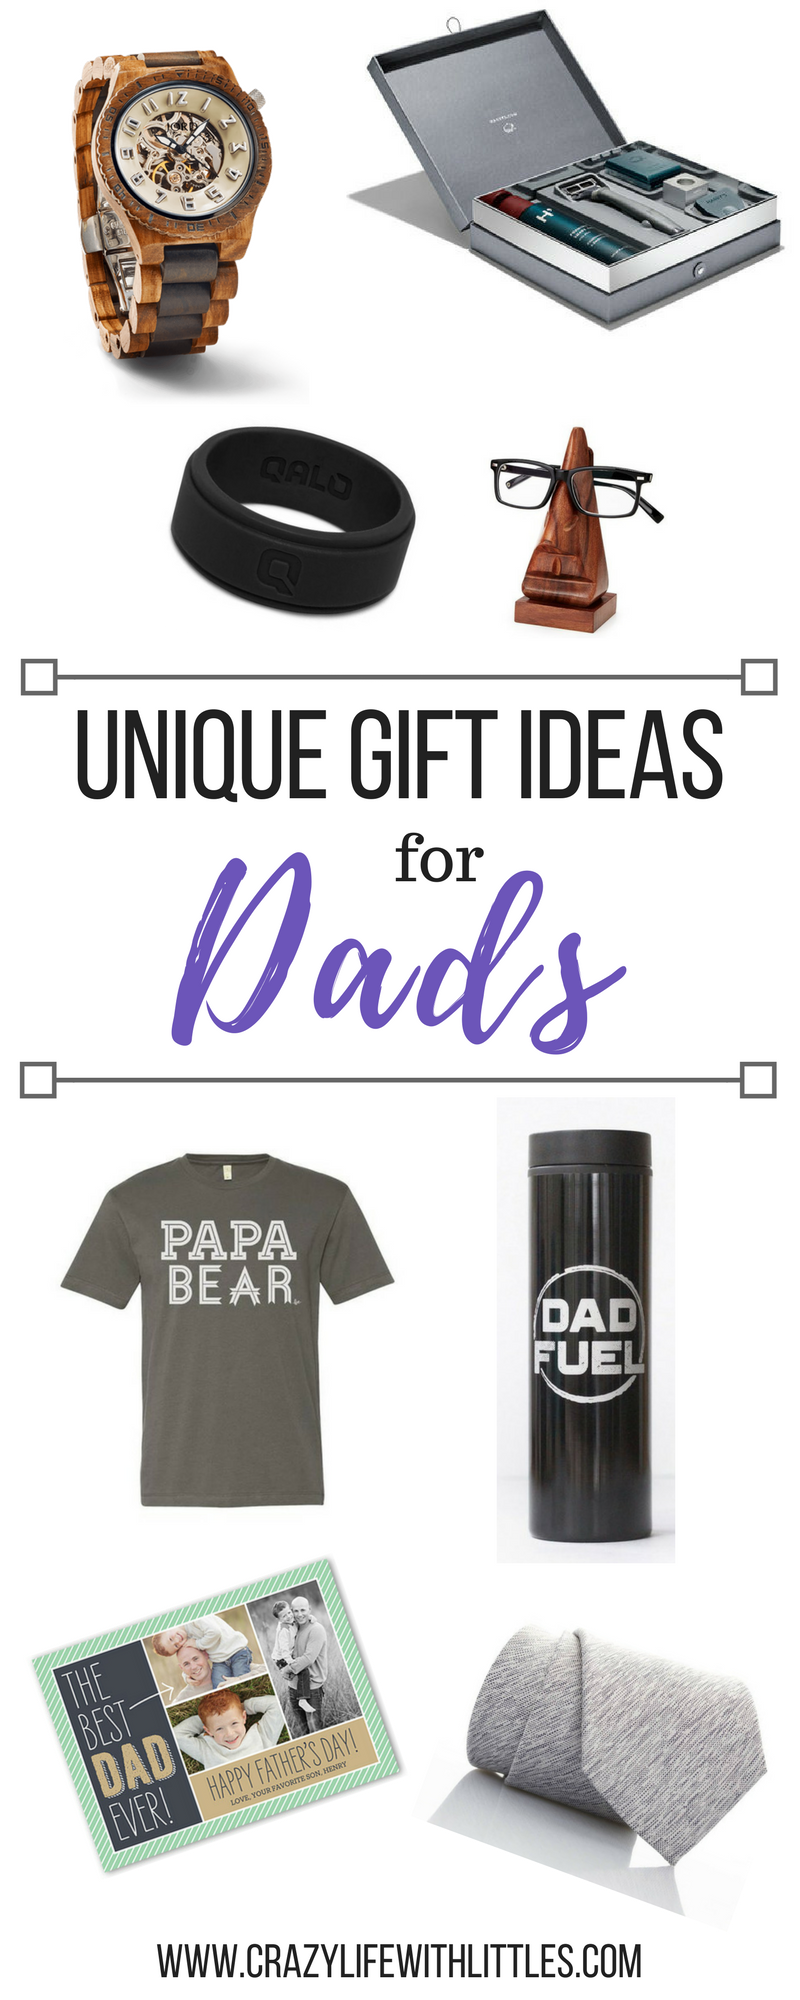 #giftsforDad #giftsformen Unique Father's Day Gifts, father's day gifts from kids, gifts for him, father's day gift ideas, gift ideas for men, gift ideas for men who have everything, gift ideas for dad